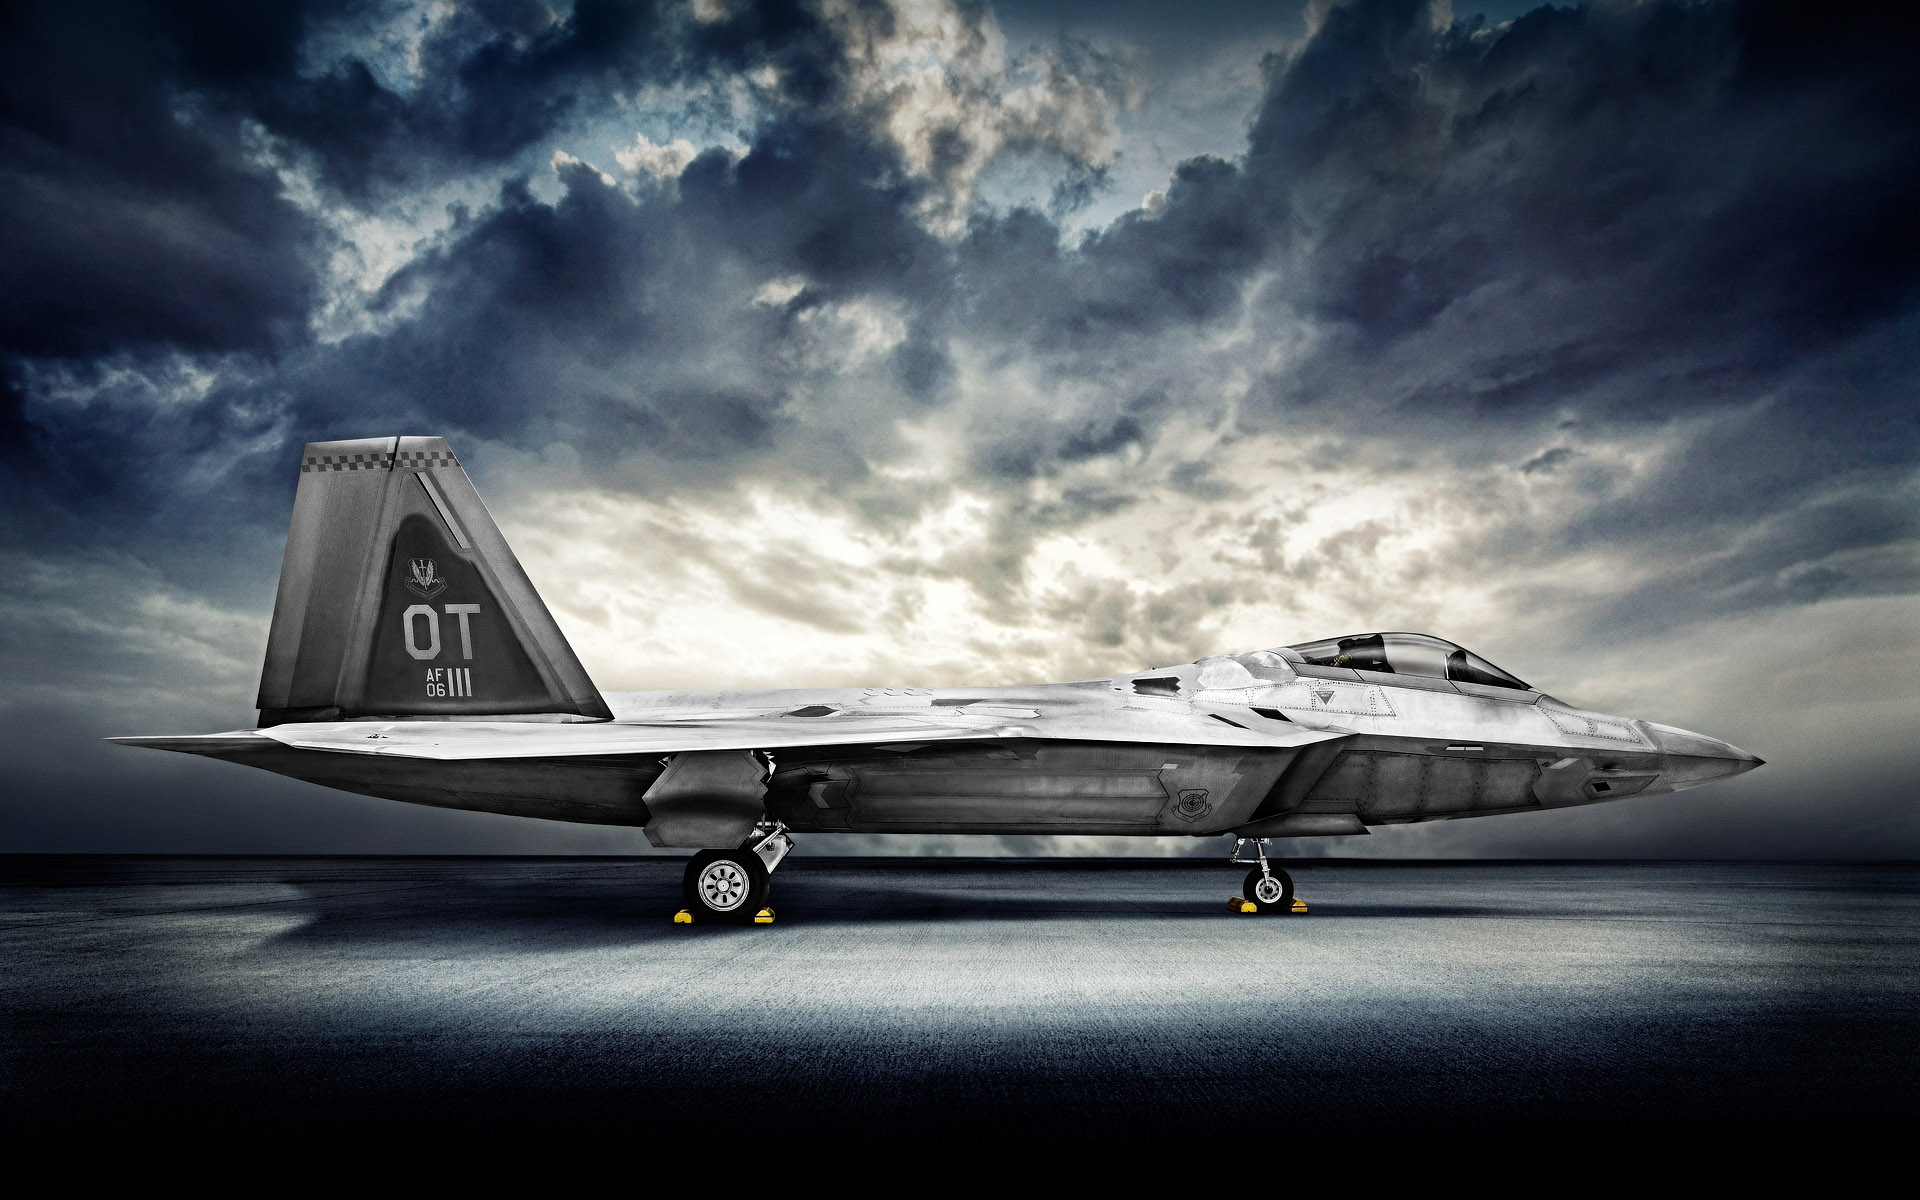 Airplane Photoshoot F22 Raptor